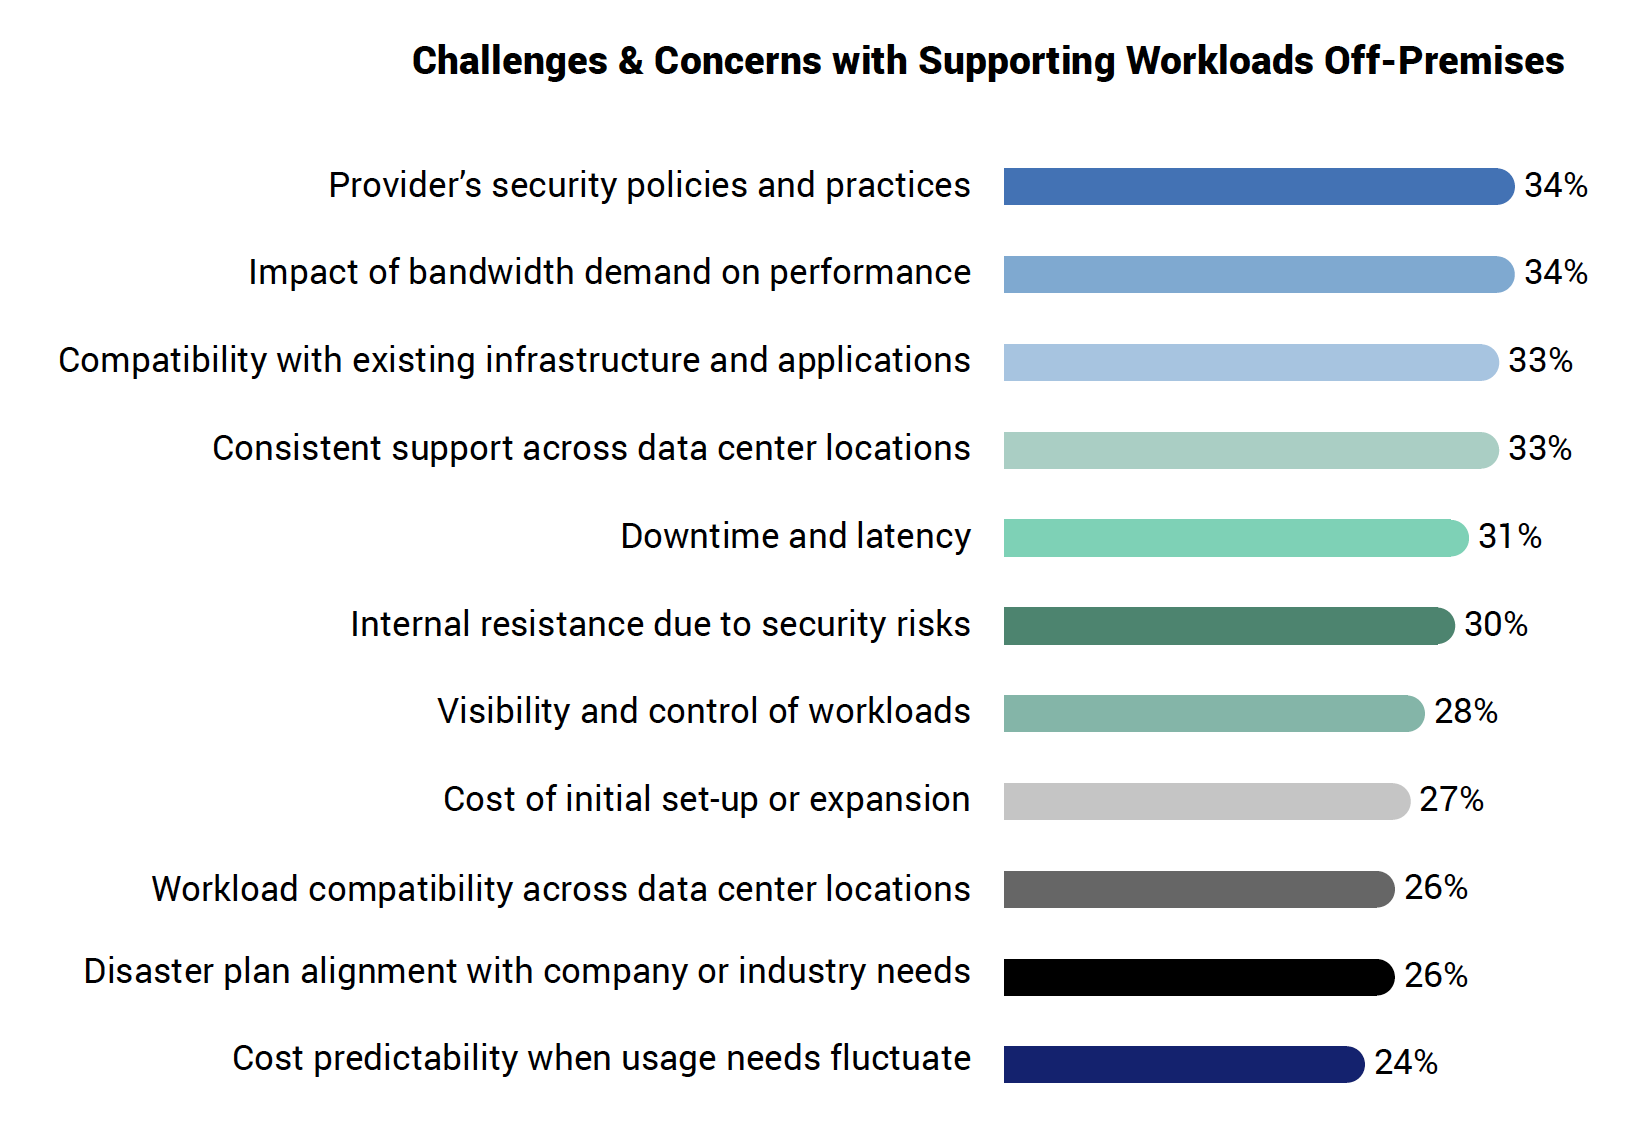 Challenges & Concerns with Supporting Workloads Off-Premises